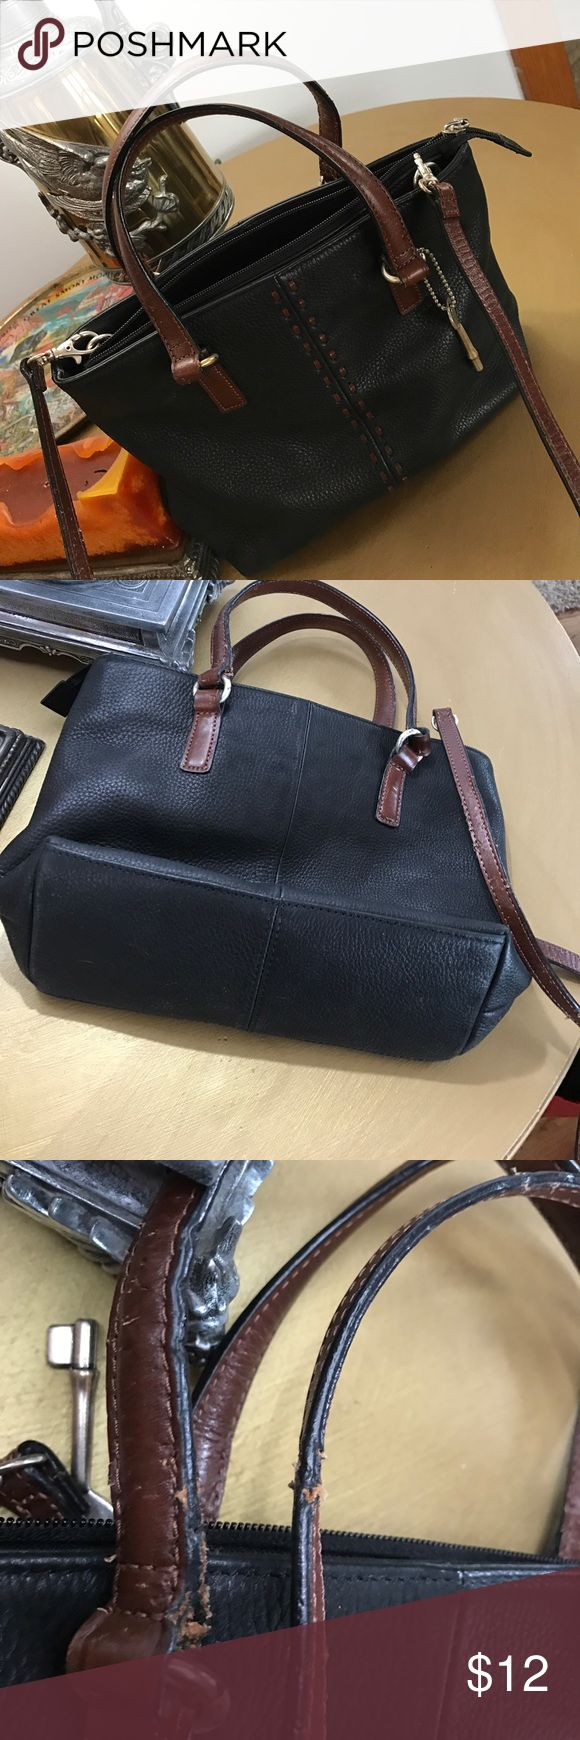 Fossil Bag Black leather with detach long strap. The bag is in great shape except the straps seem to have been teethed in perhaps ? Fossil Bags